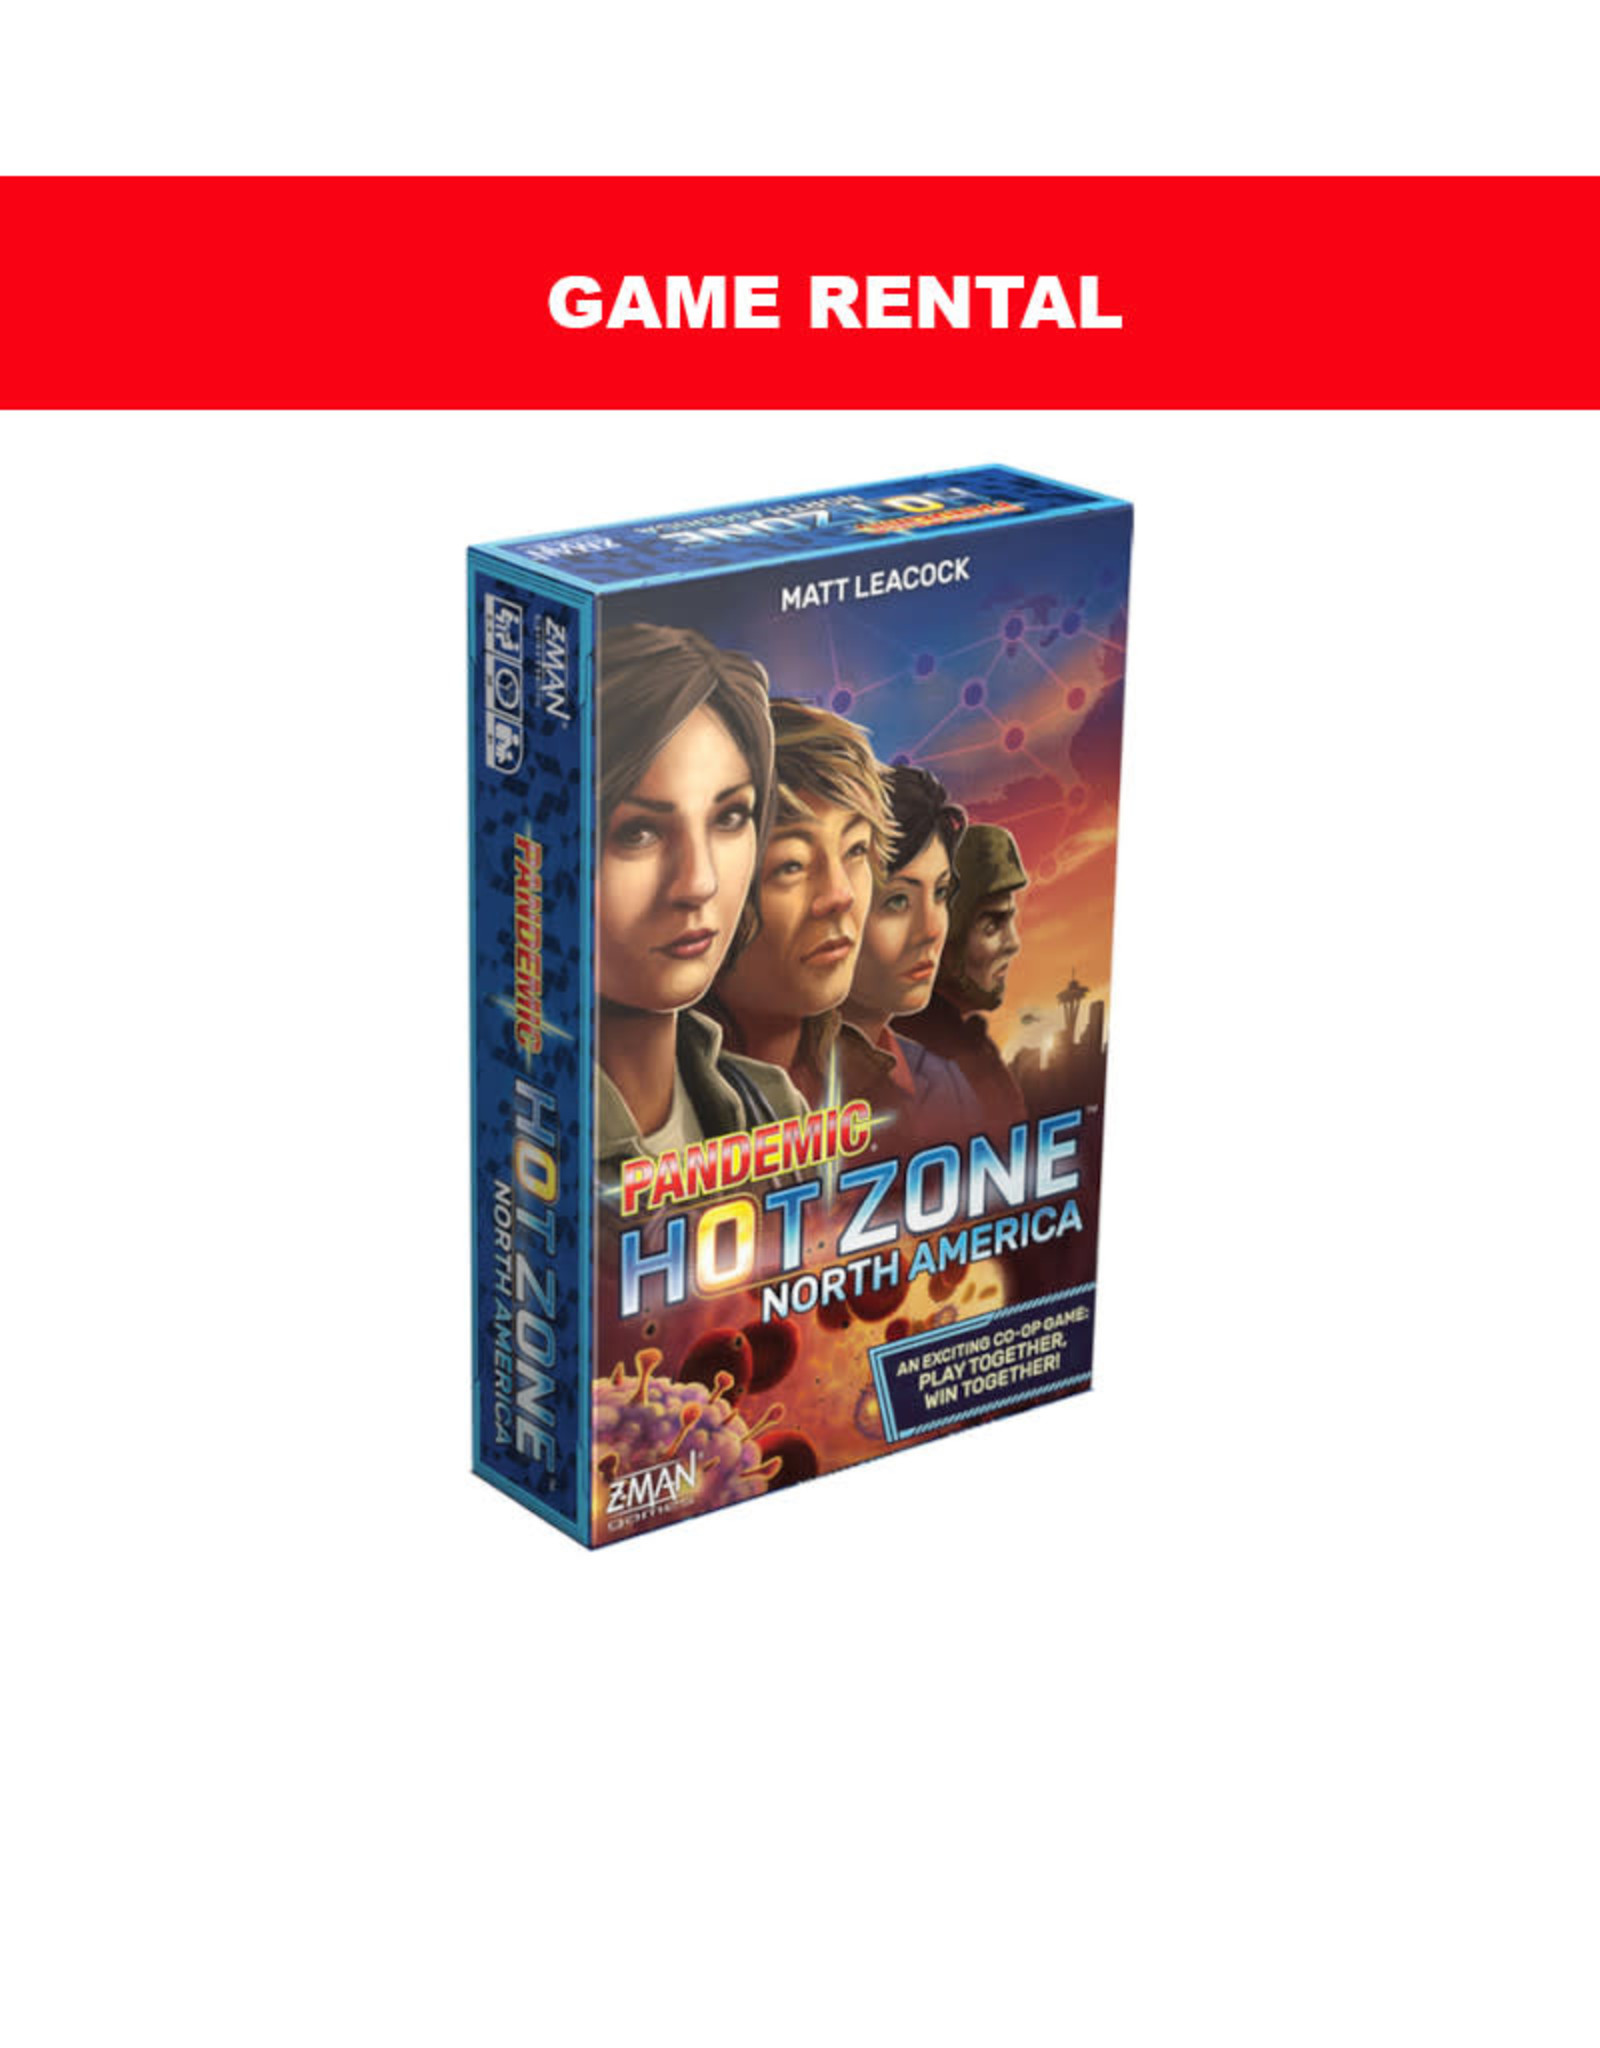 Zman Games (RENT) Pandemic Hot Zone North America per day. Love it! Buy it!